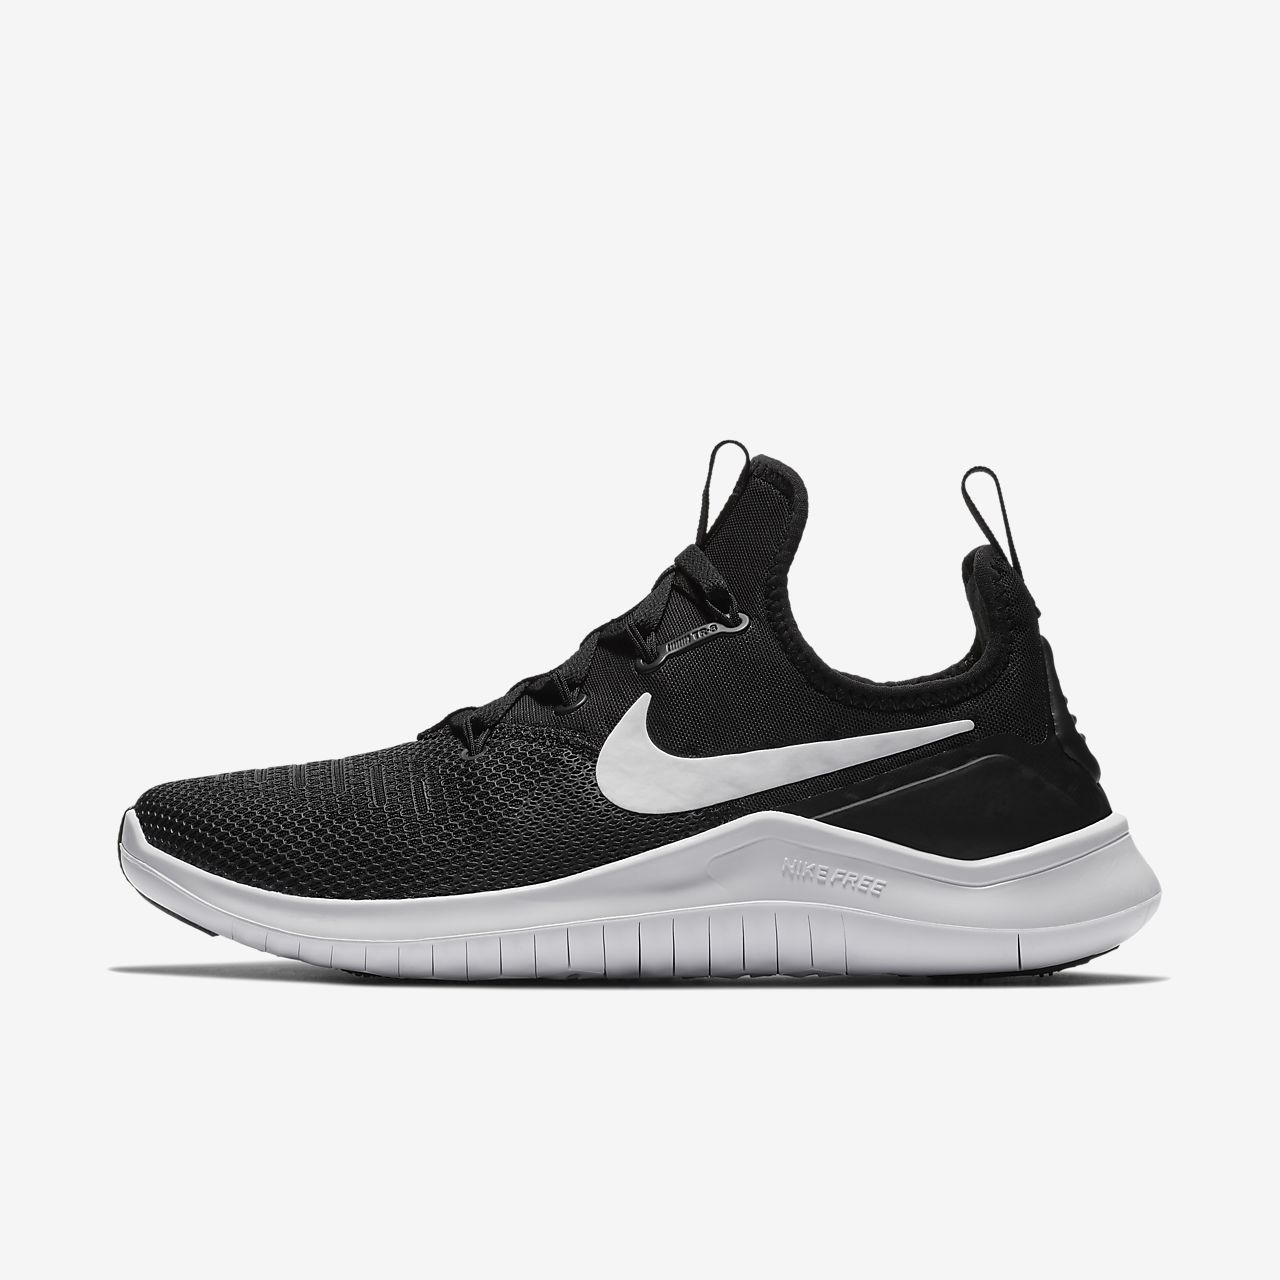 54c337772f919 Nike Free TR8 Women s Gym HIIT Cross Training Shoe. Nike.com ZA